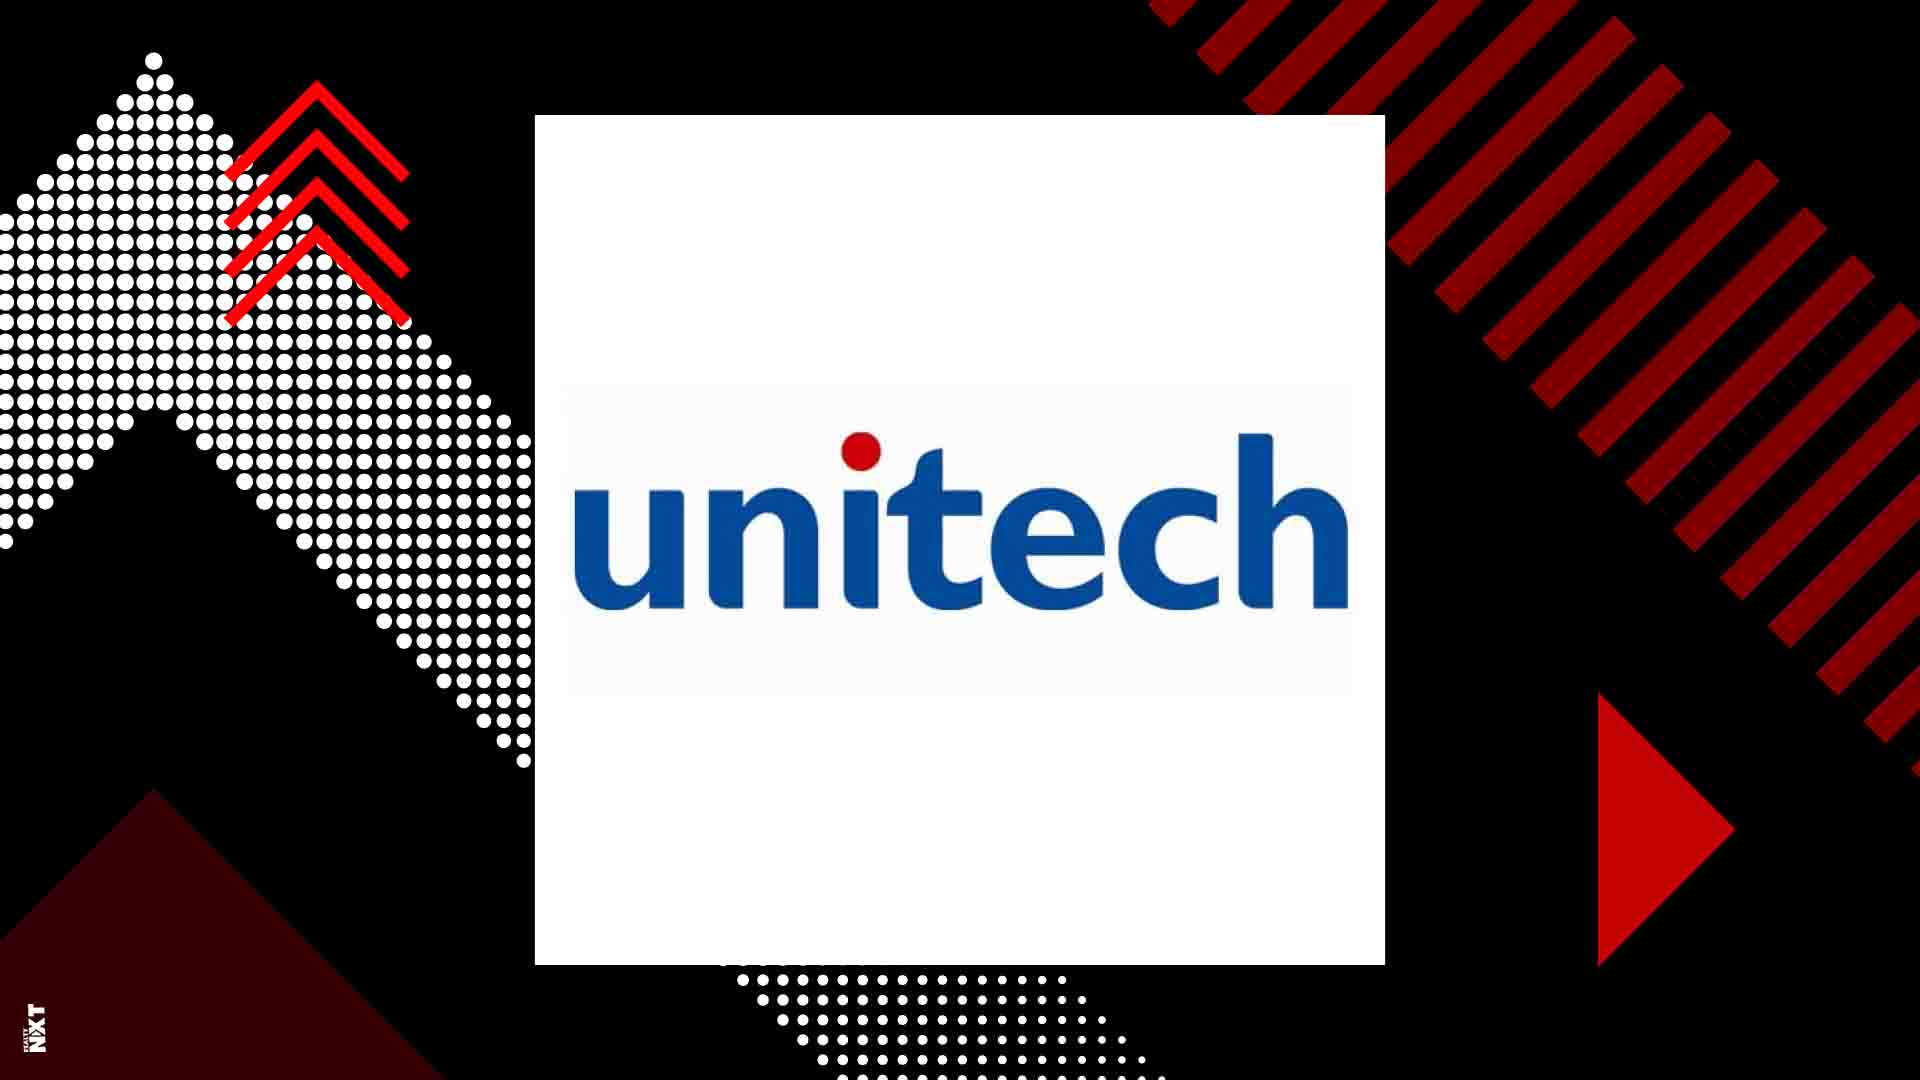 Unitech loses property in Noida over Rs 1,203 crore dues Read more at: //economictimes.indiatimes.com/articleshow/71824560.cms?from=mdr&utm_source=contentofinterest&utm_medium=text&utm_campaign=cppst